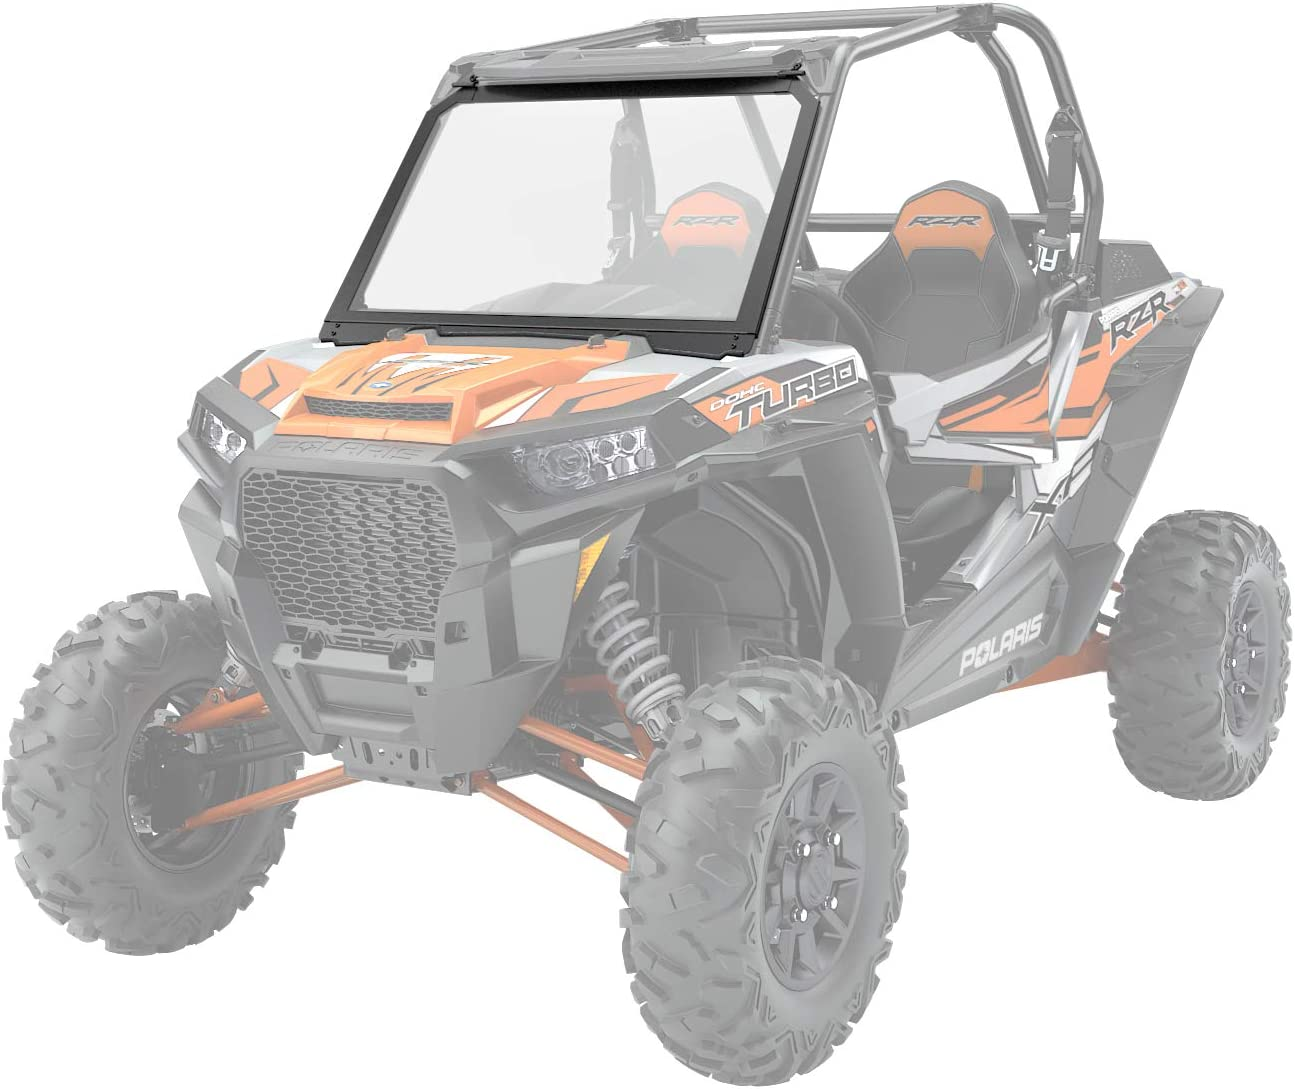 Polaris Year-end annual account RZR XP 1000 XP4 S4 900 S 28831 Max 57% OFF - Vented Glass Windshield